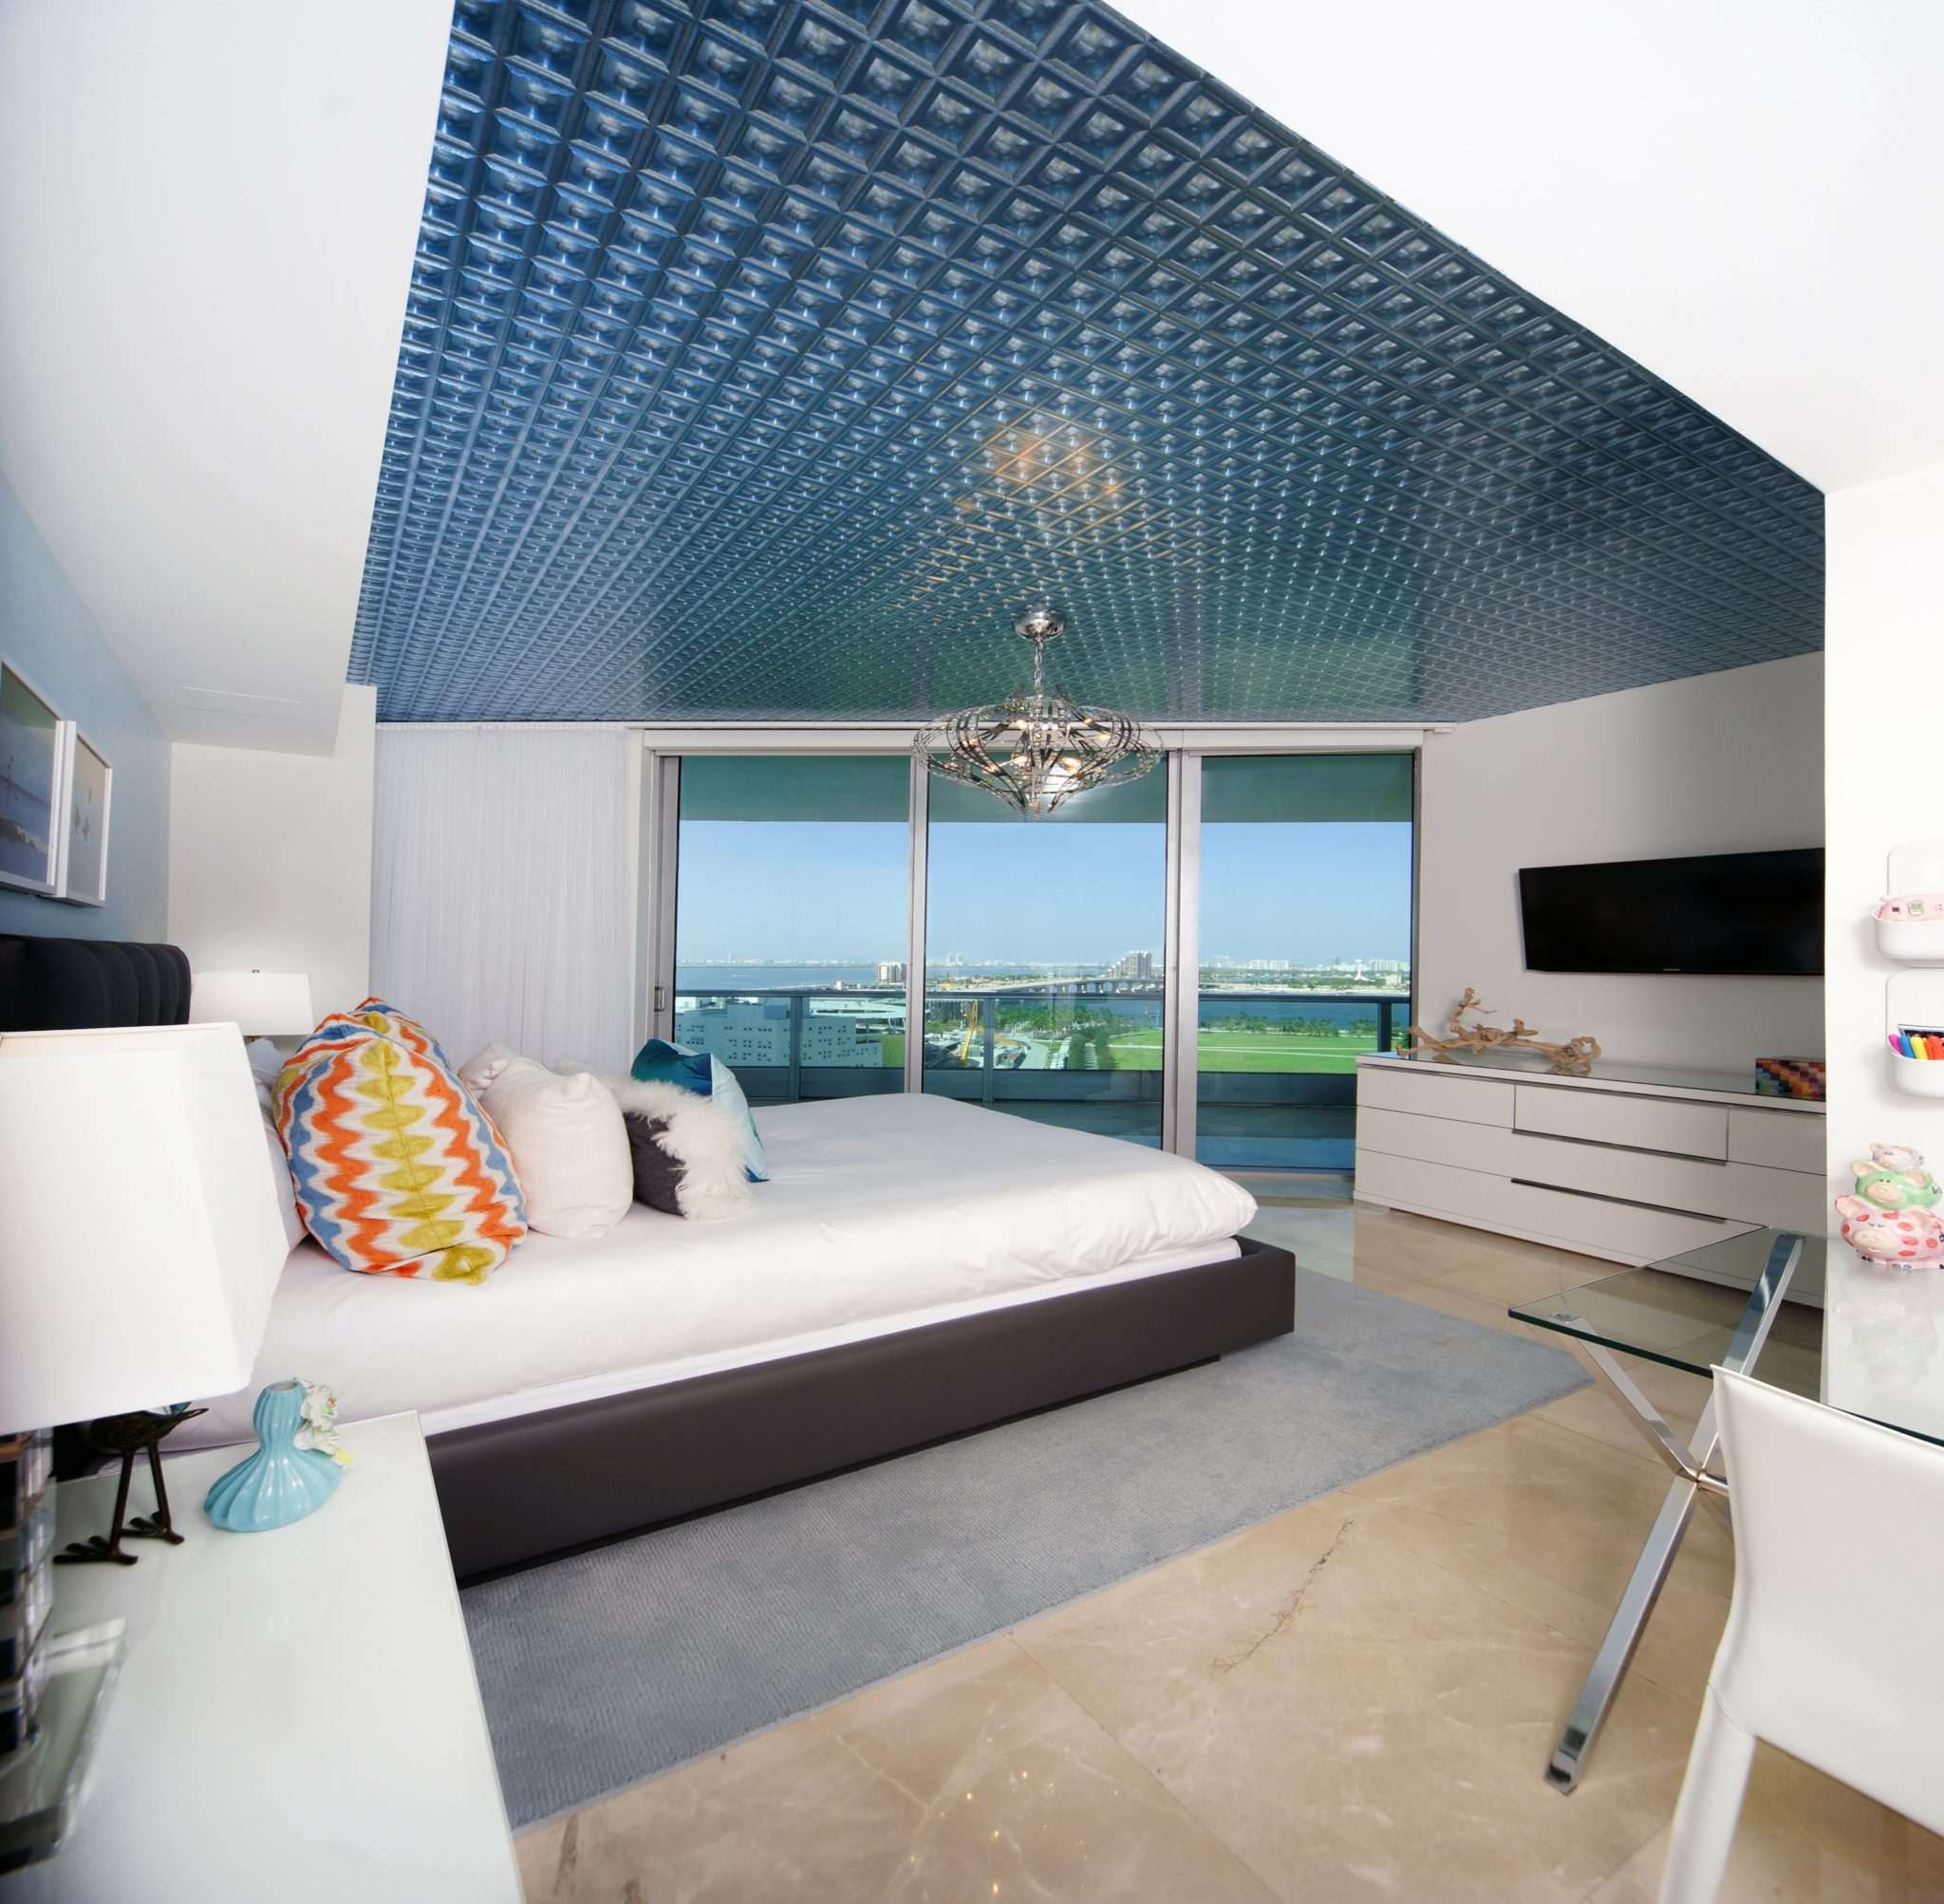 900 Biscayne Master Bedroom with Statement Ceiling by DiMare Design